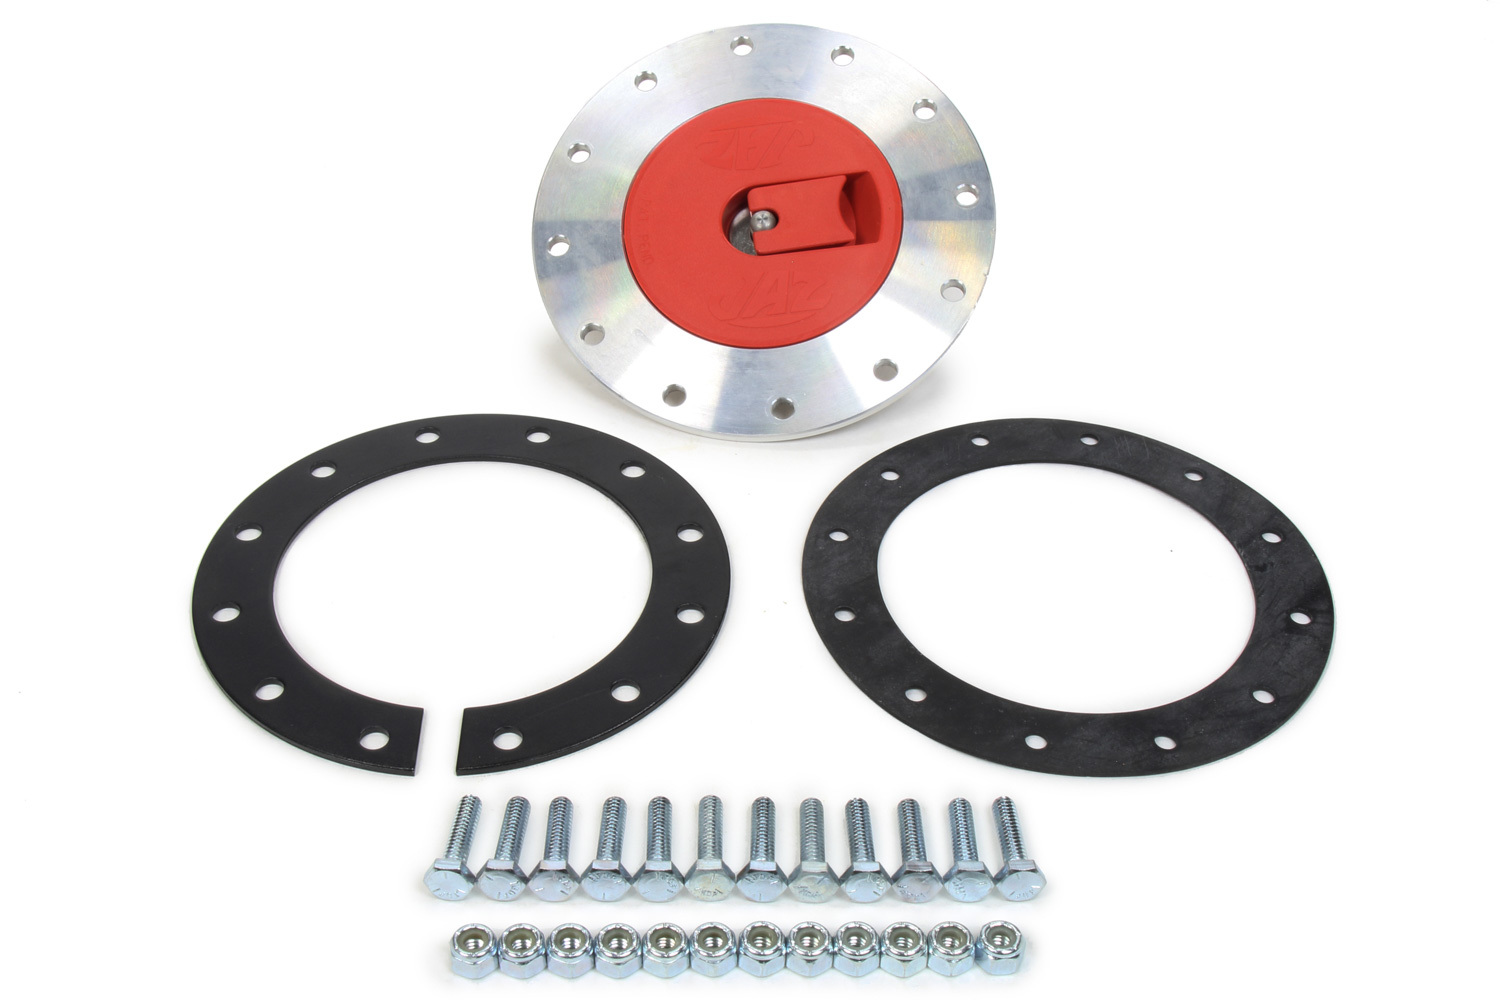 Jaz 350-202-06 Fuel Cell Filler Plate, Vented Positive Lock Cap, Flat Mount, 12-Bolt Flange / Gasket, Steel / Plastic, Red / Zinc Oxide, Kit